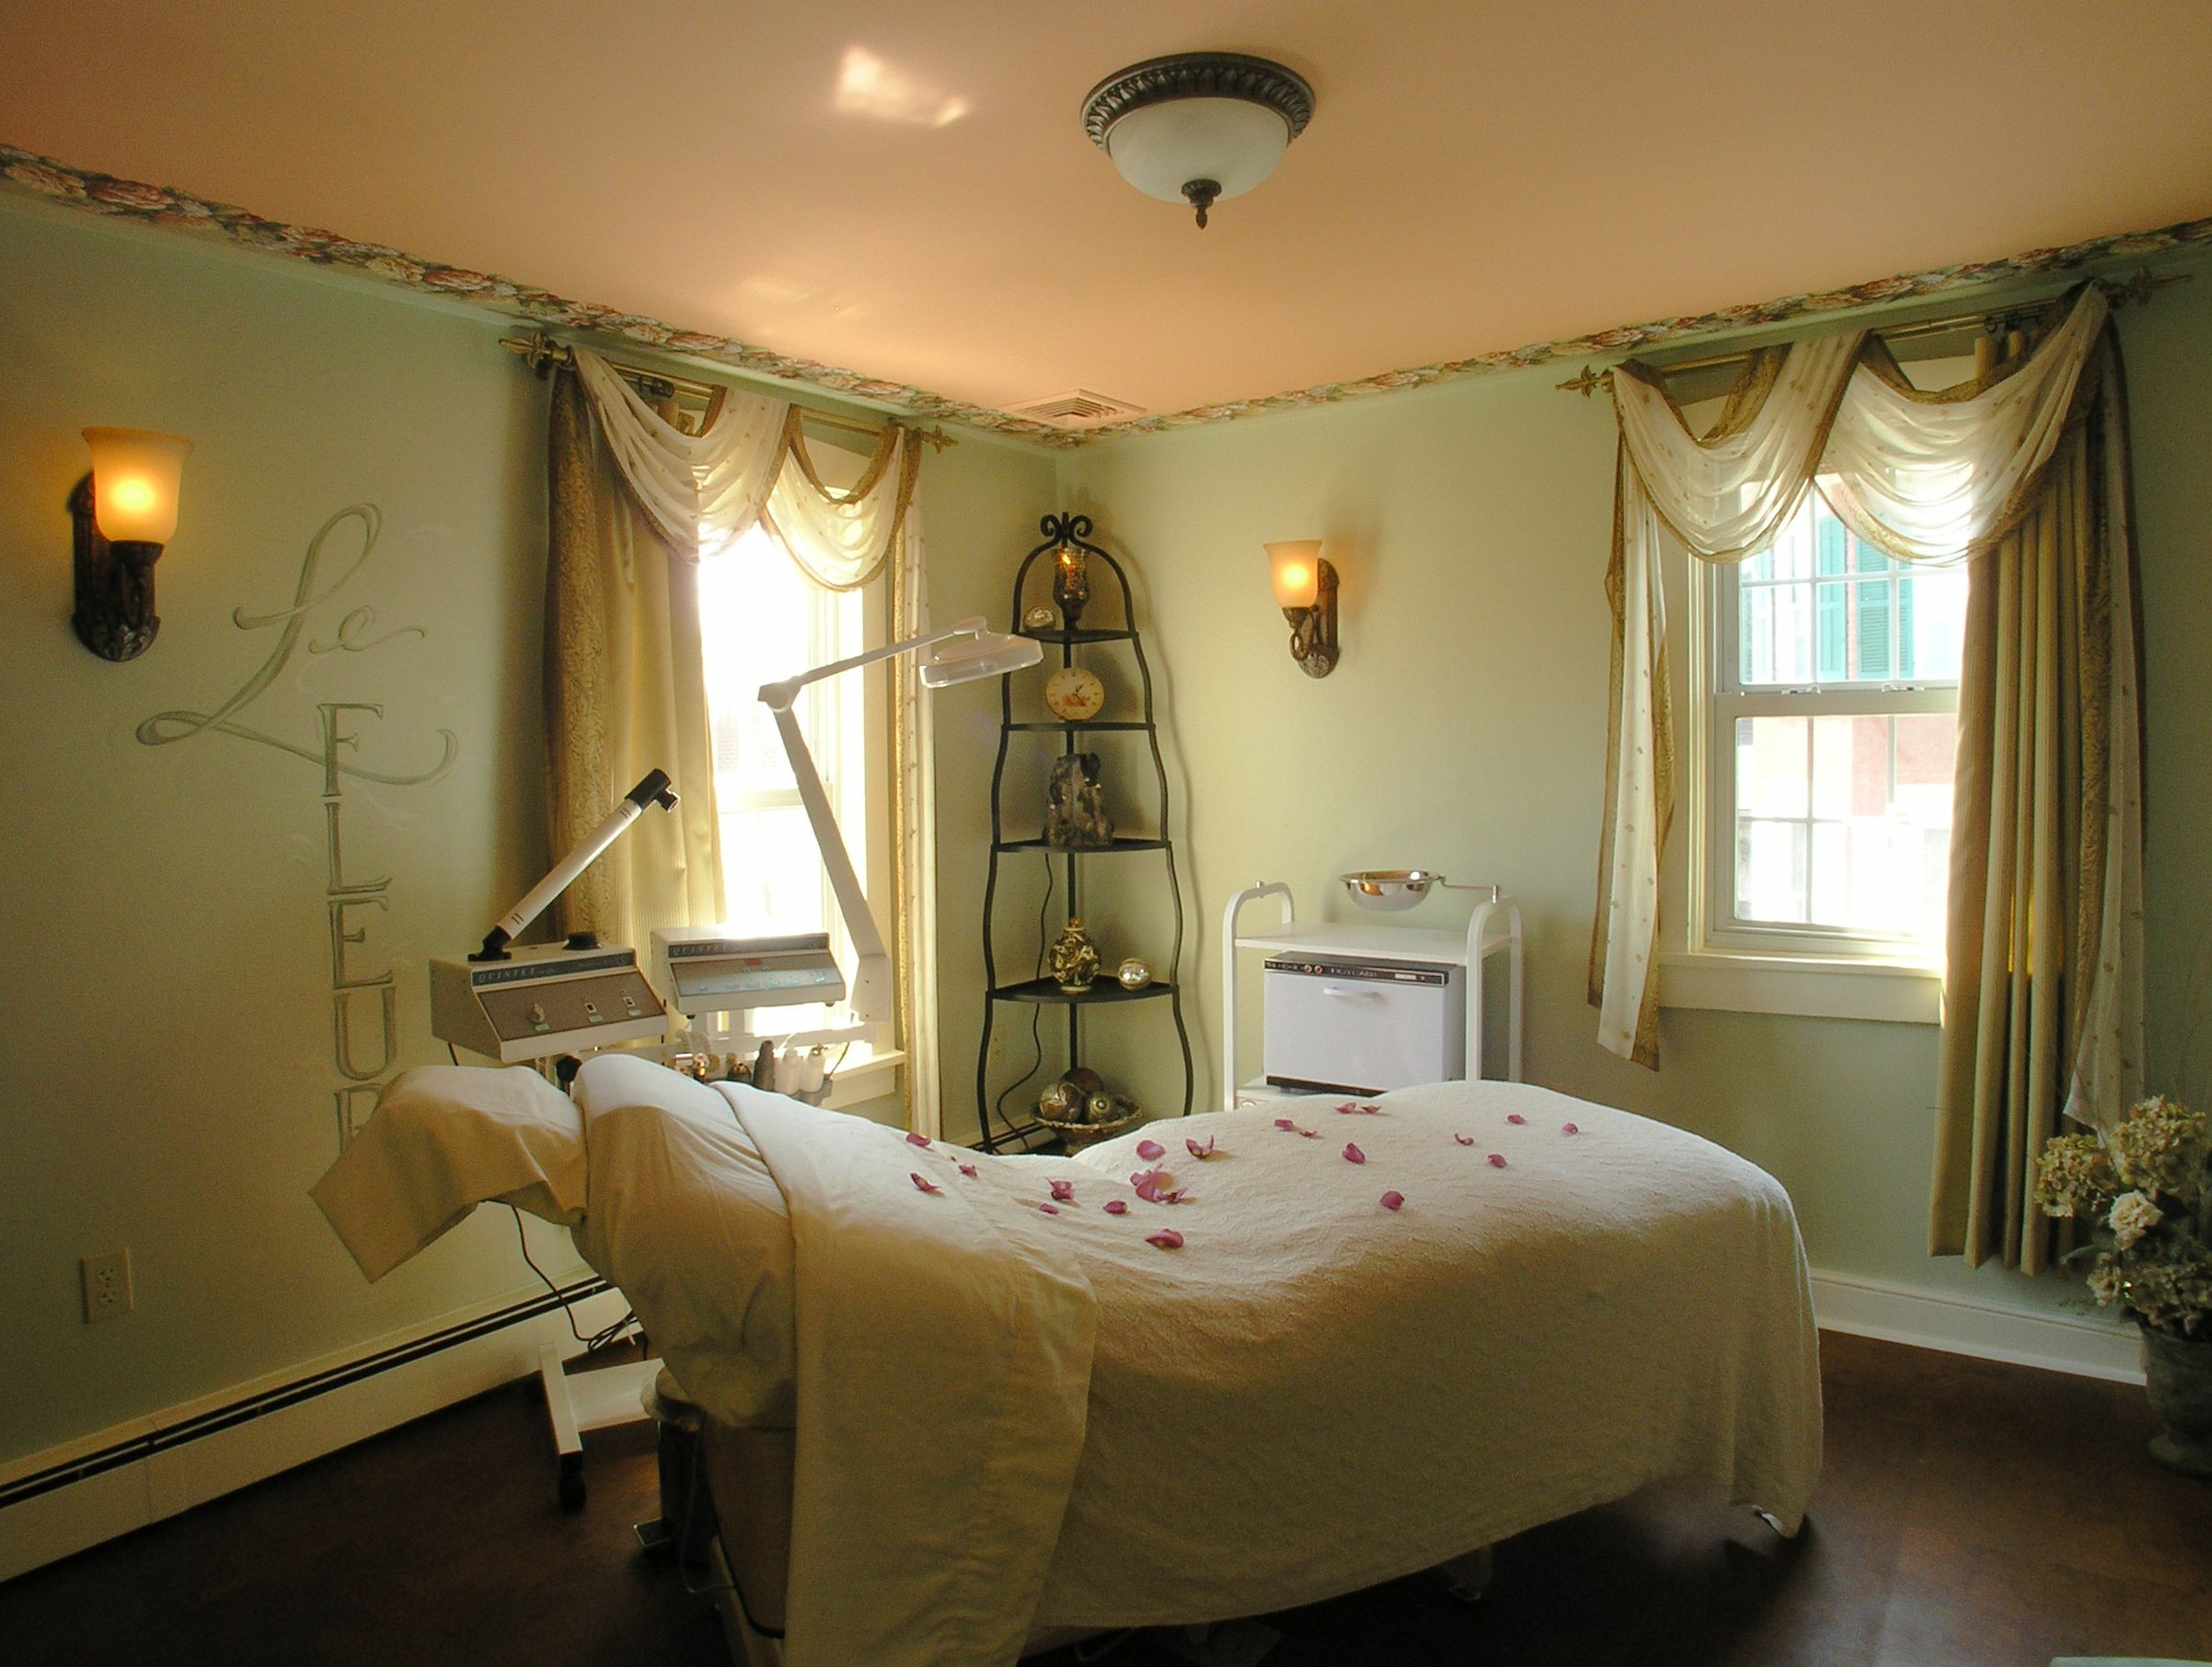 Day spa massage therapy room esthetician room for Spa treatment room interior design